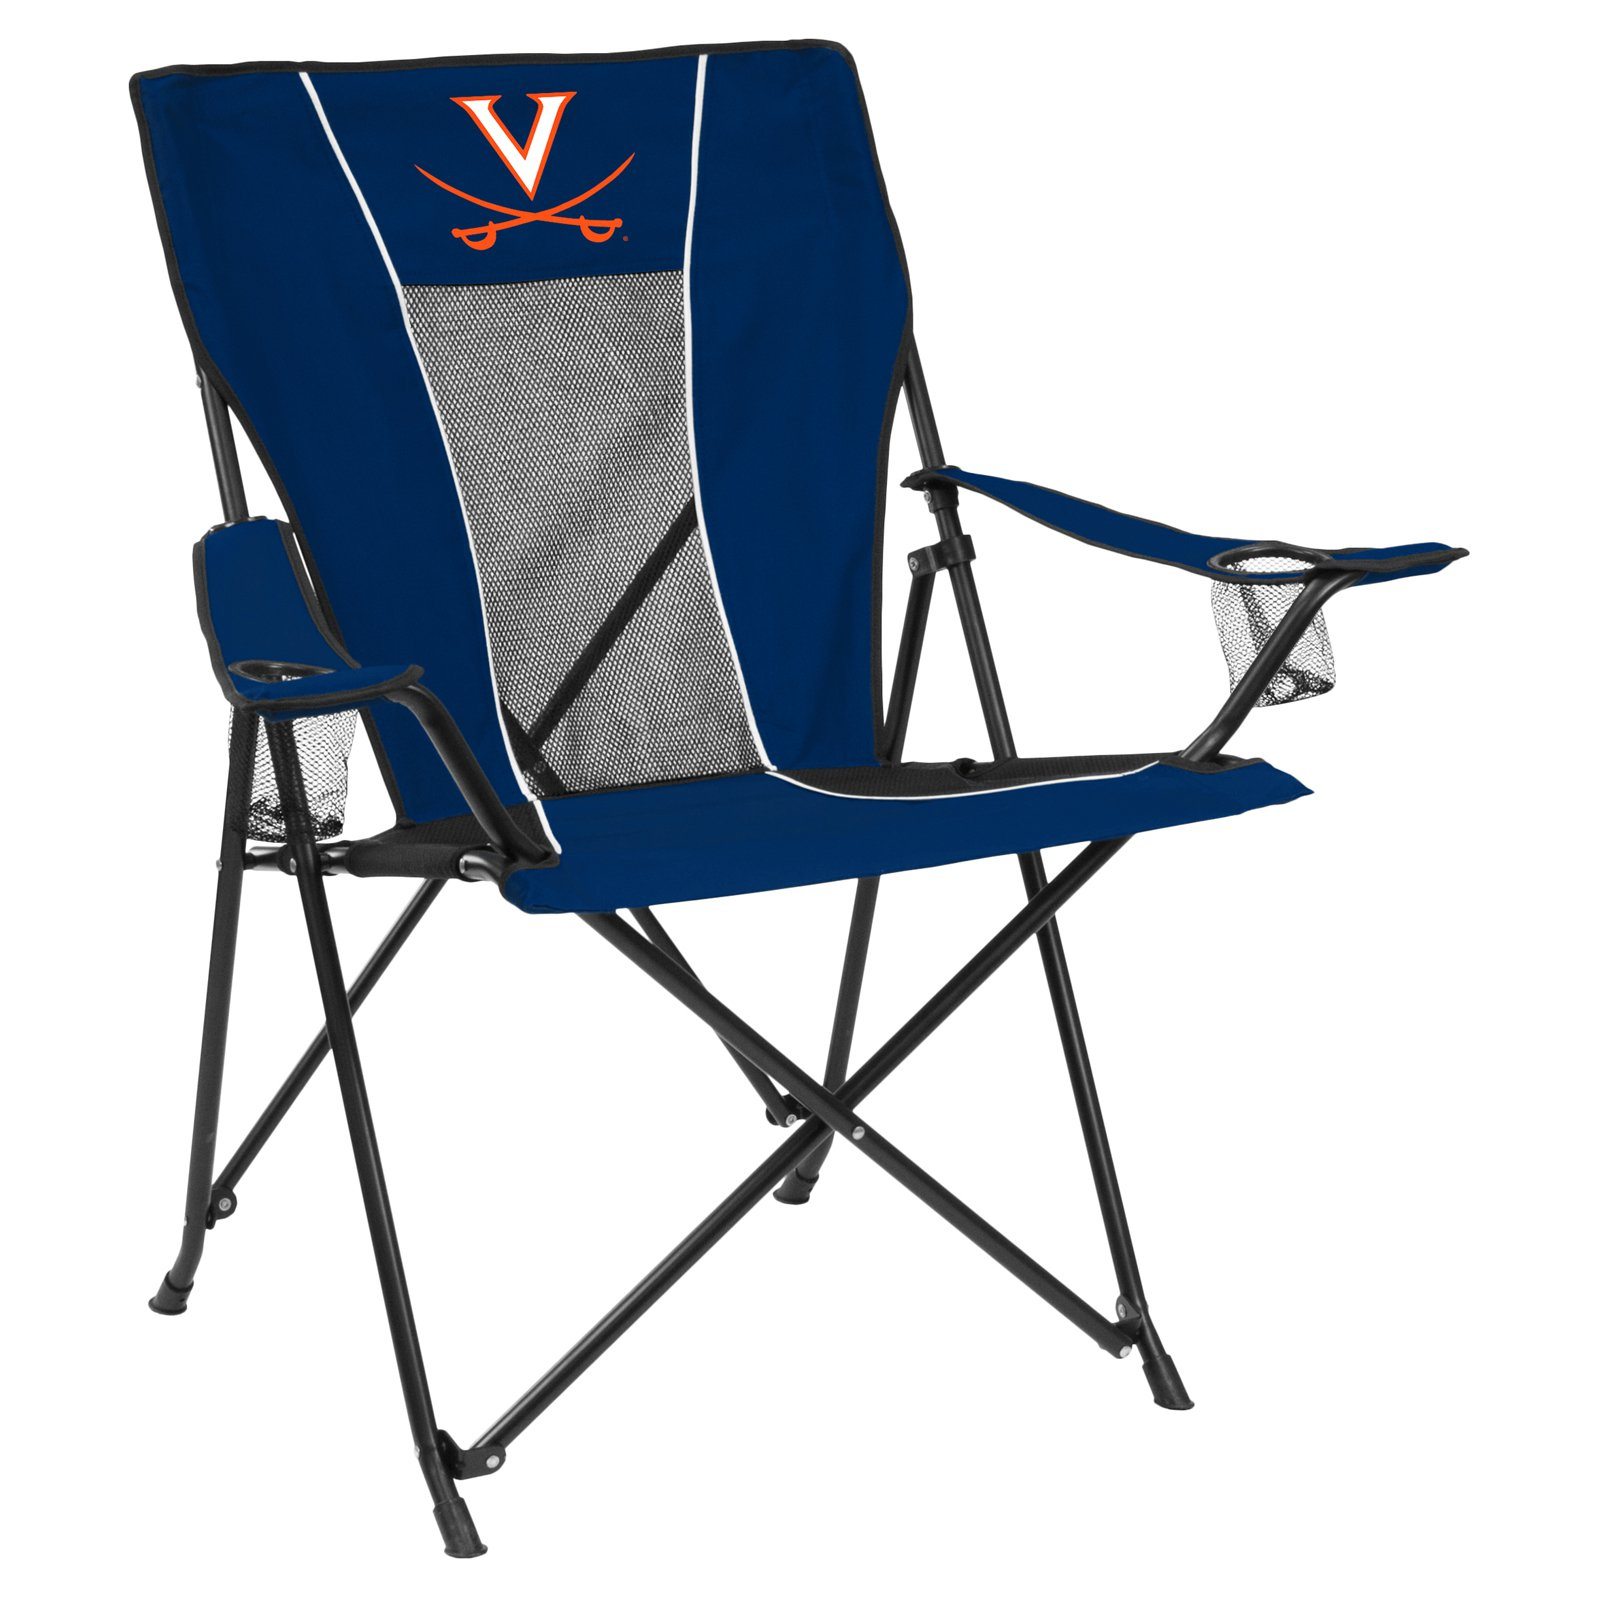 University of Virginia Cavaliers Game Time Chair Folding Tailgate